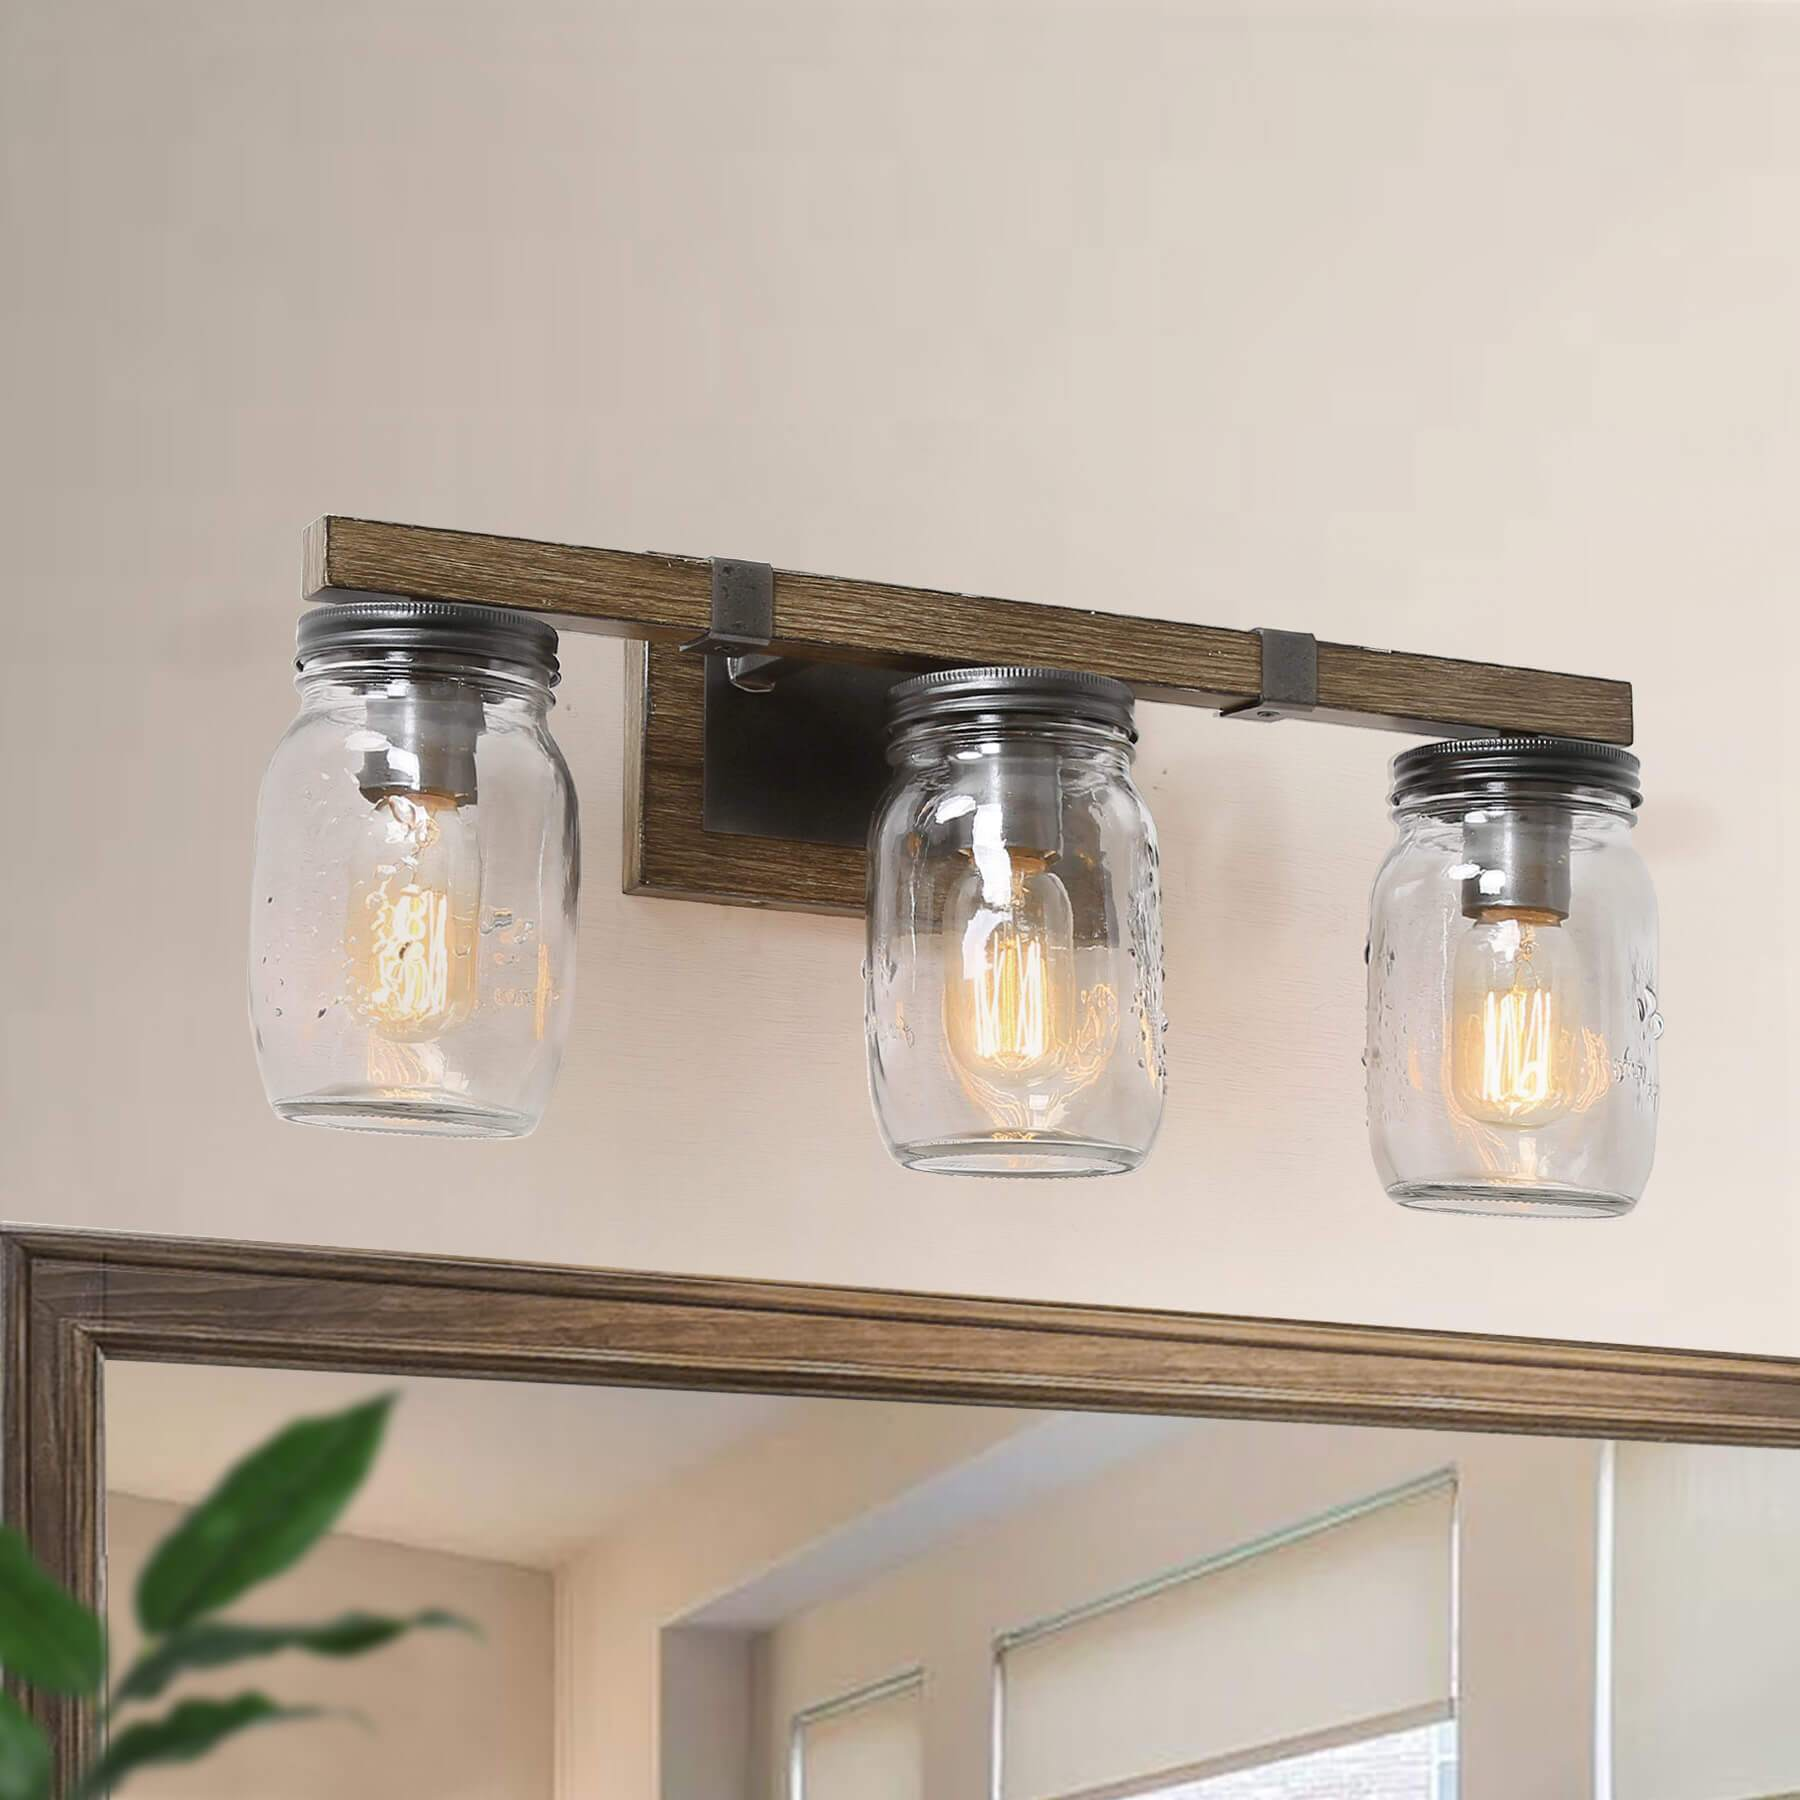 Wood Mason Jar Wall Sconces Pic